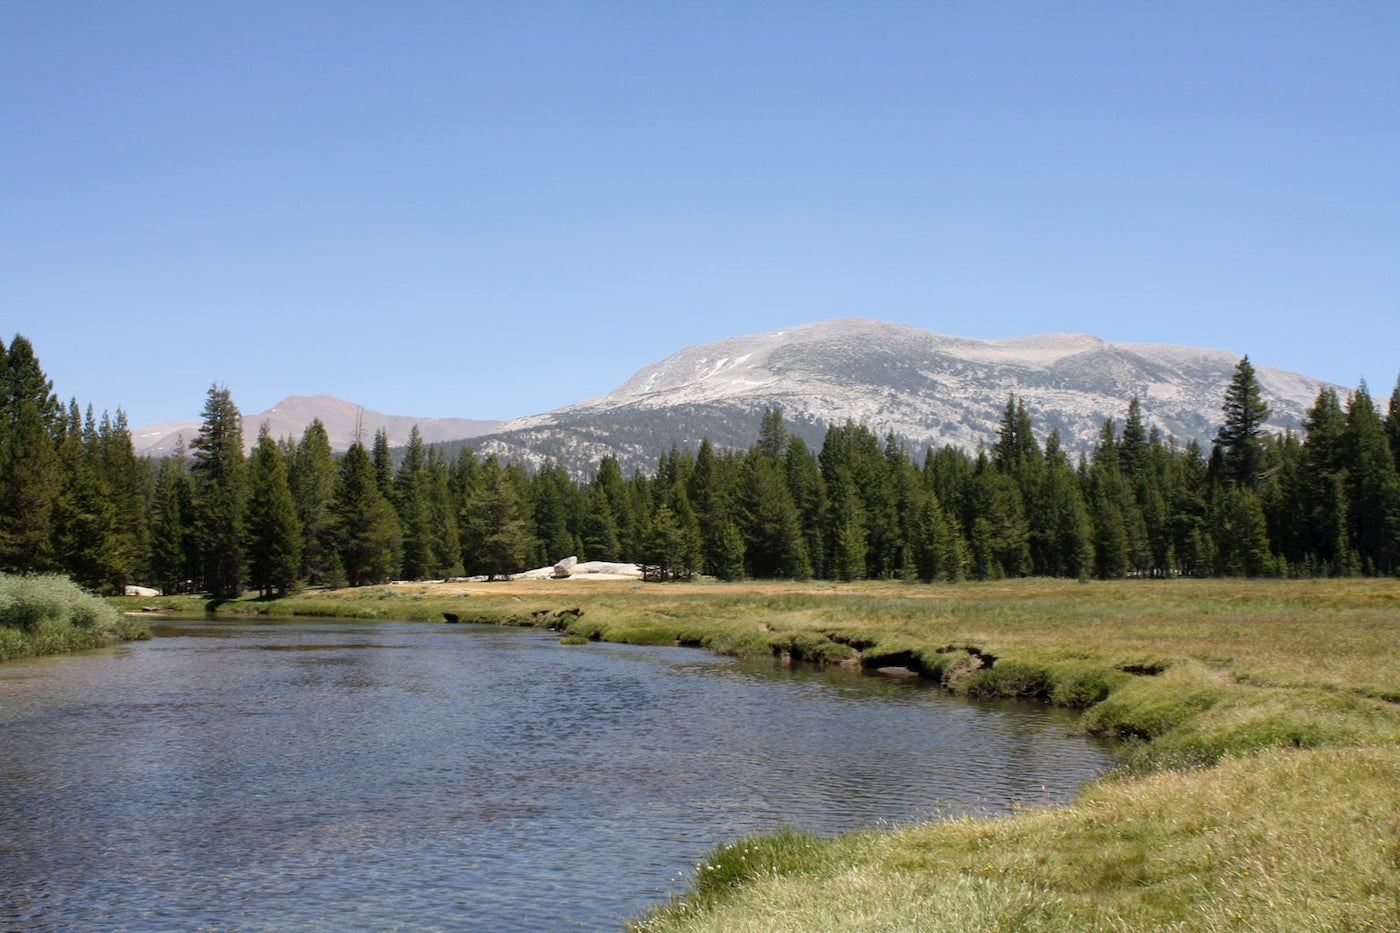 the Tuolumne River in yosemite national park running through the meadow below mountains.